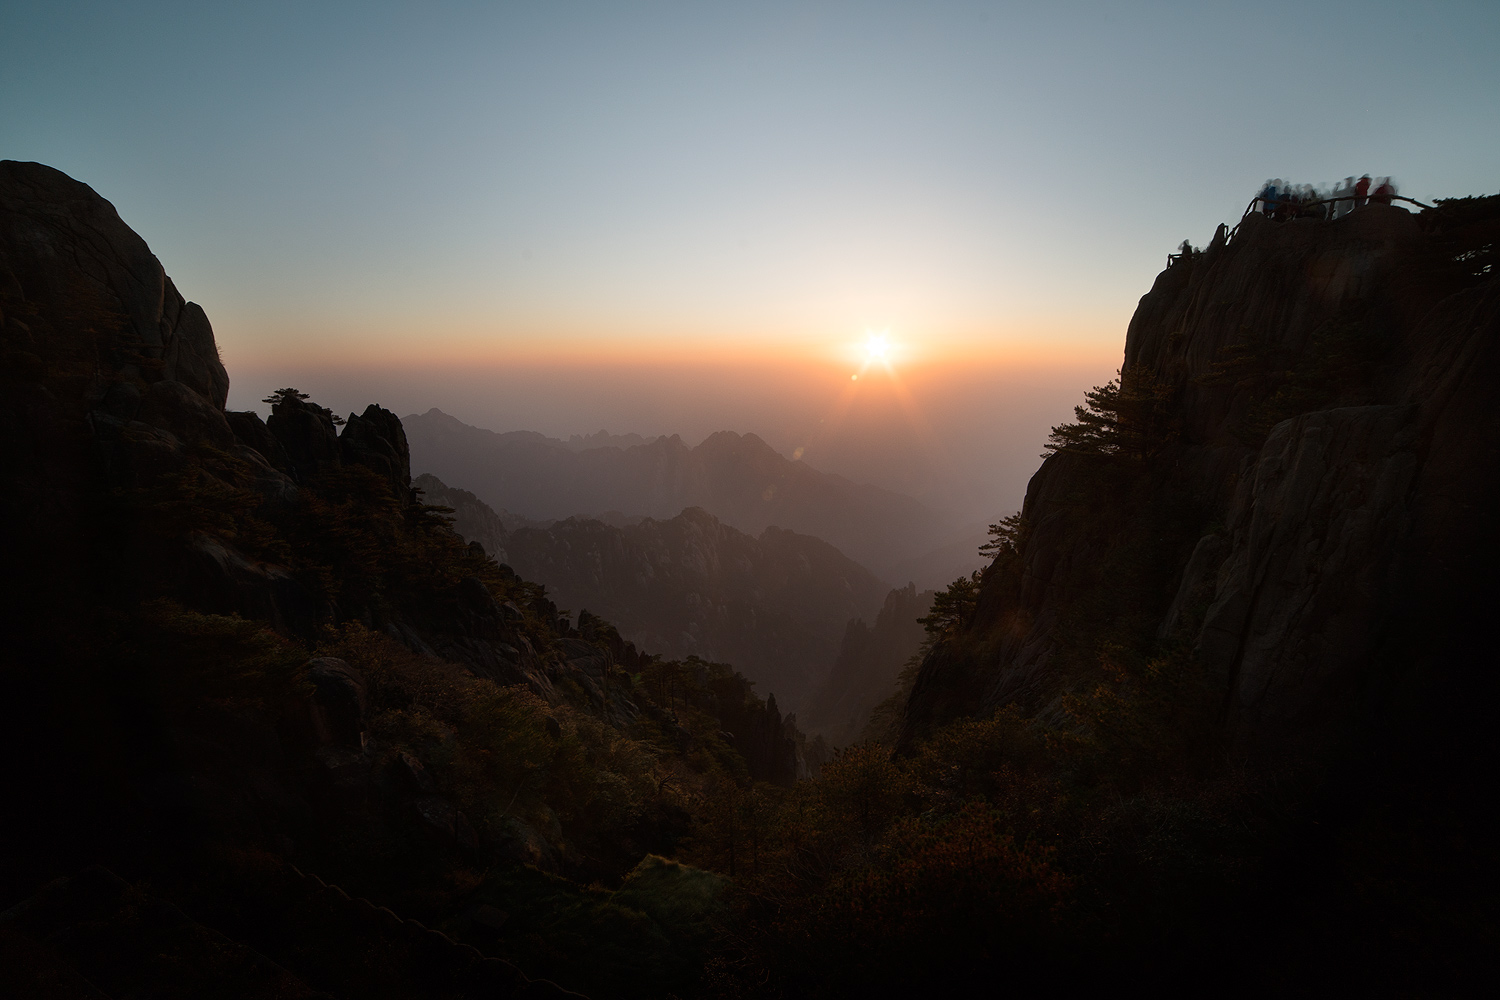 Sunset Bright Summit Huangshan Mountain Yellow Mountain China © PhotoTravelNomads.com